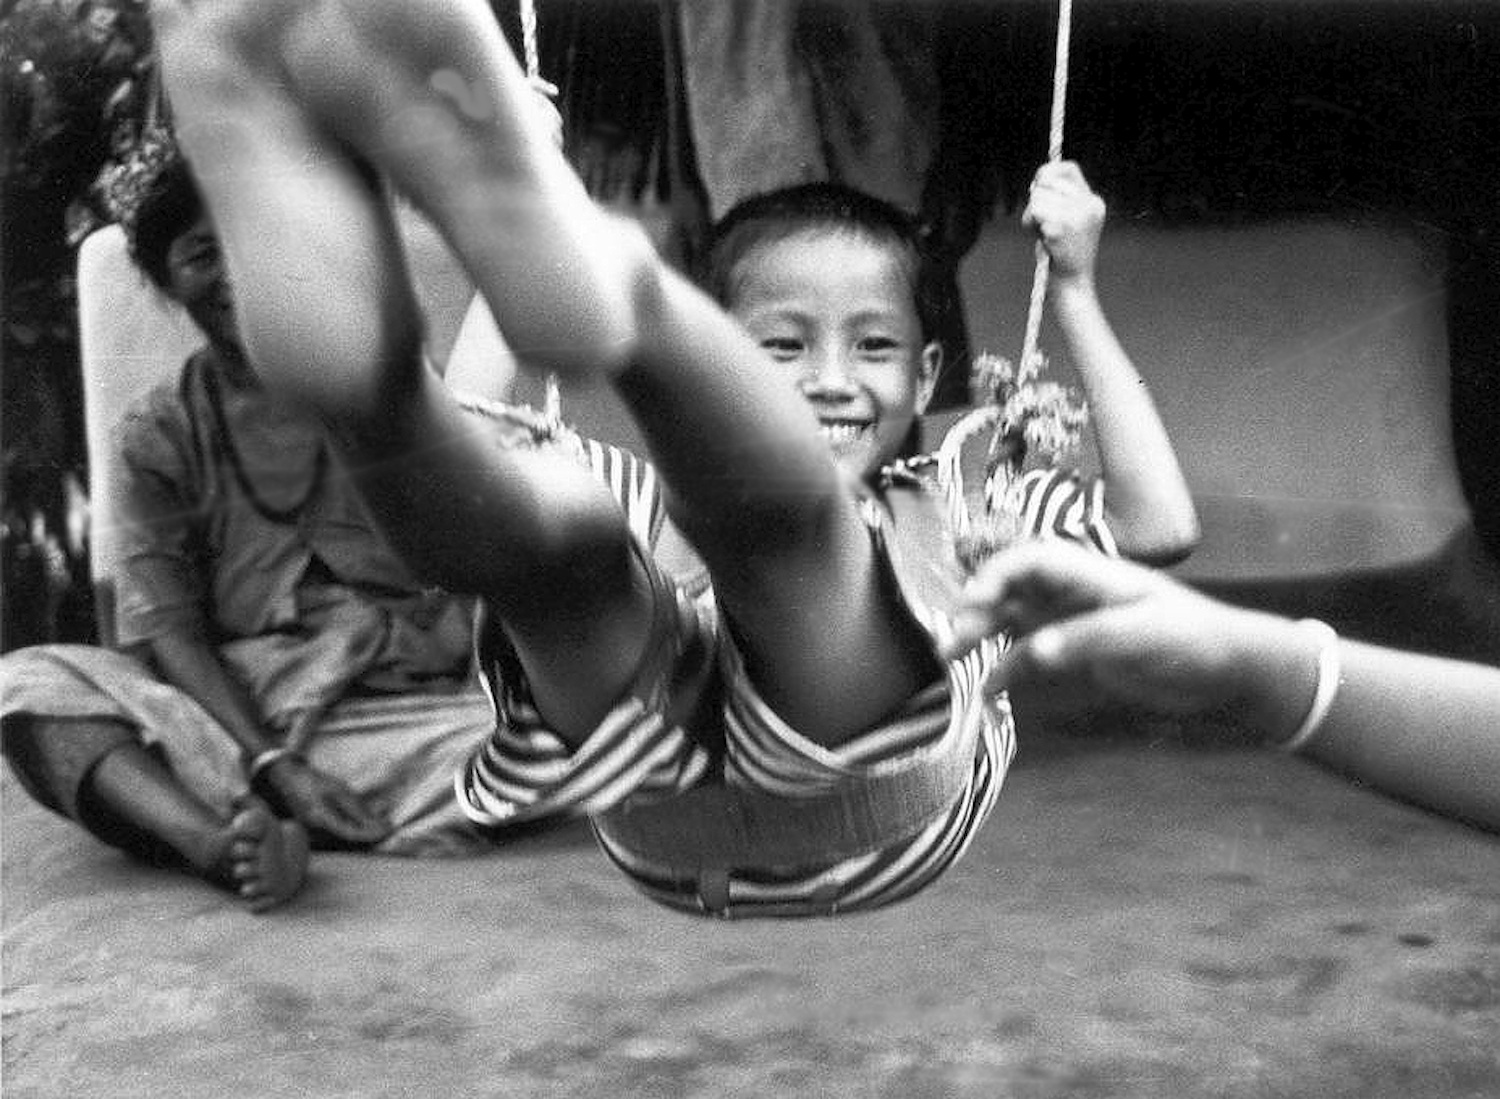 Playing happily on a swing   Here I am a refugee but I do not want refuge. I want the wings to fly. (c) Aita Maya / Rose Class / PhotoVoice